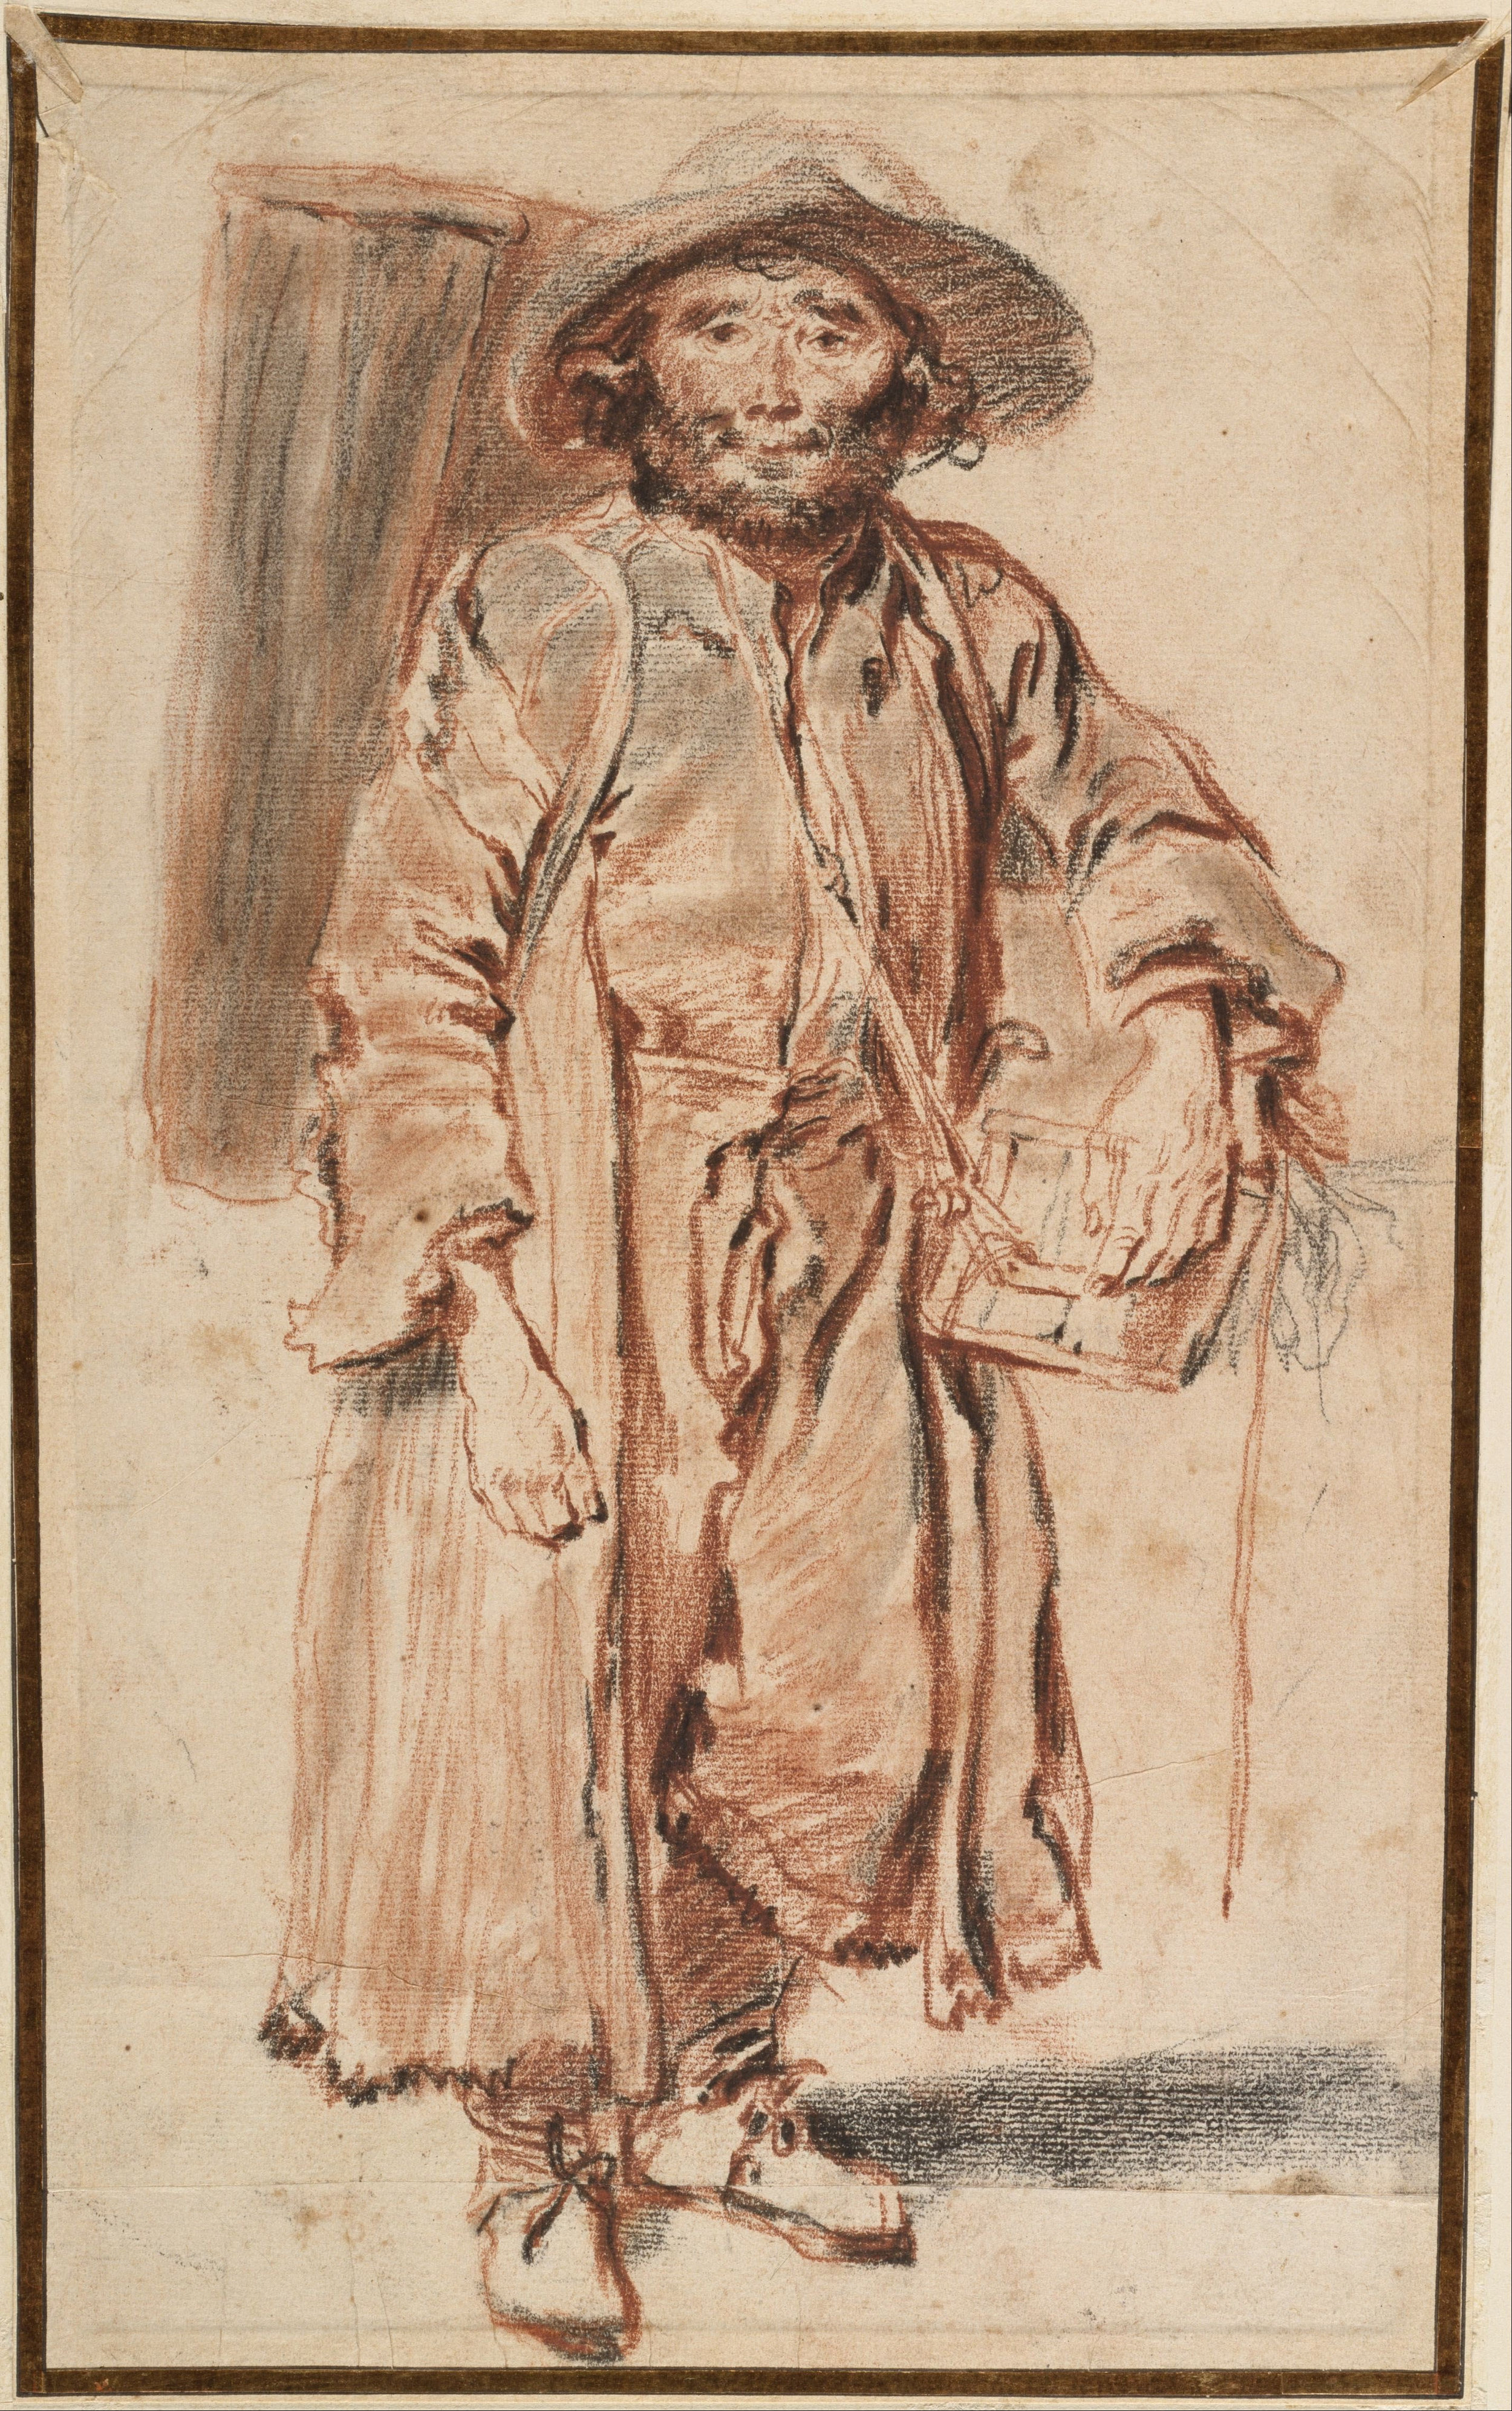 The Old Savoyard, red and black chalk with stumping, 1715, Antoine Watteau, (image courtesy of the Art Institute of Chicago)